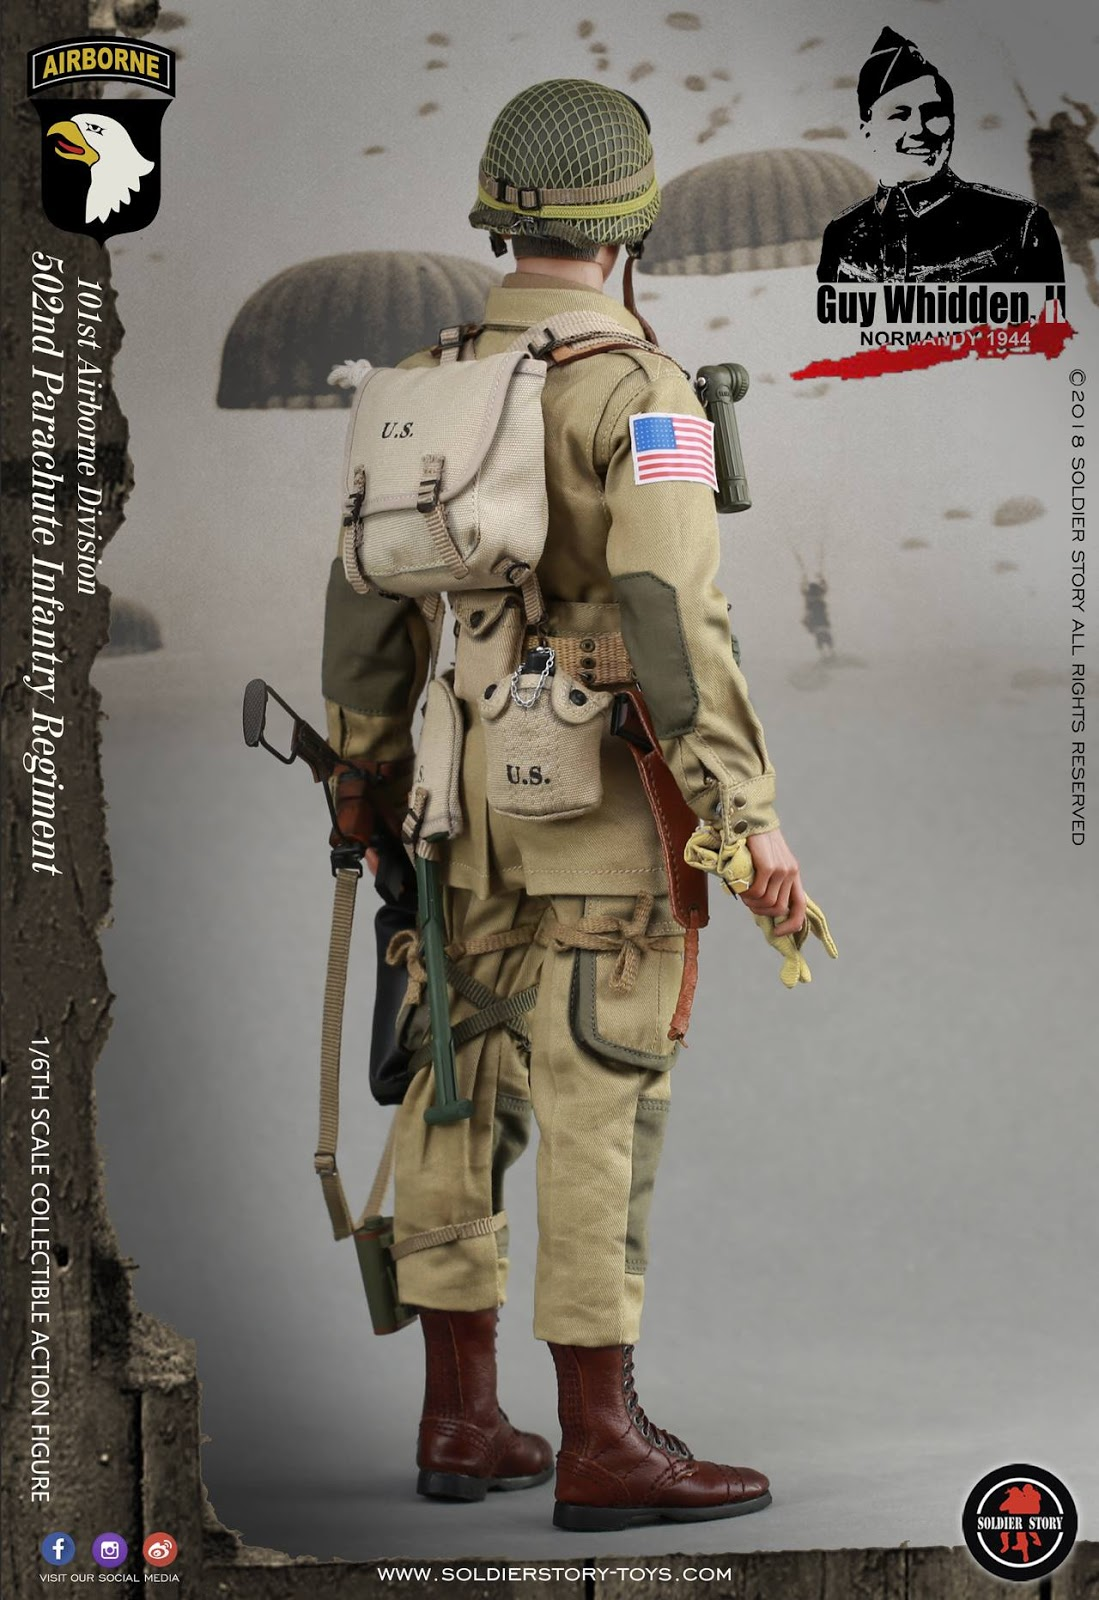 SoldierStory SS110 1//6th WWII 101st Airborne Division Guy Whidden Figure Helmet